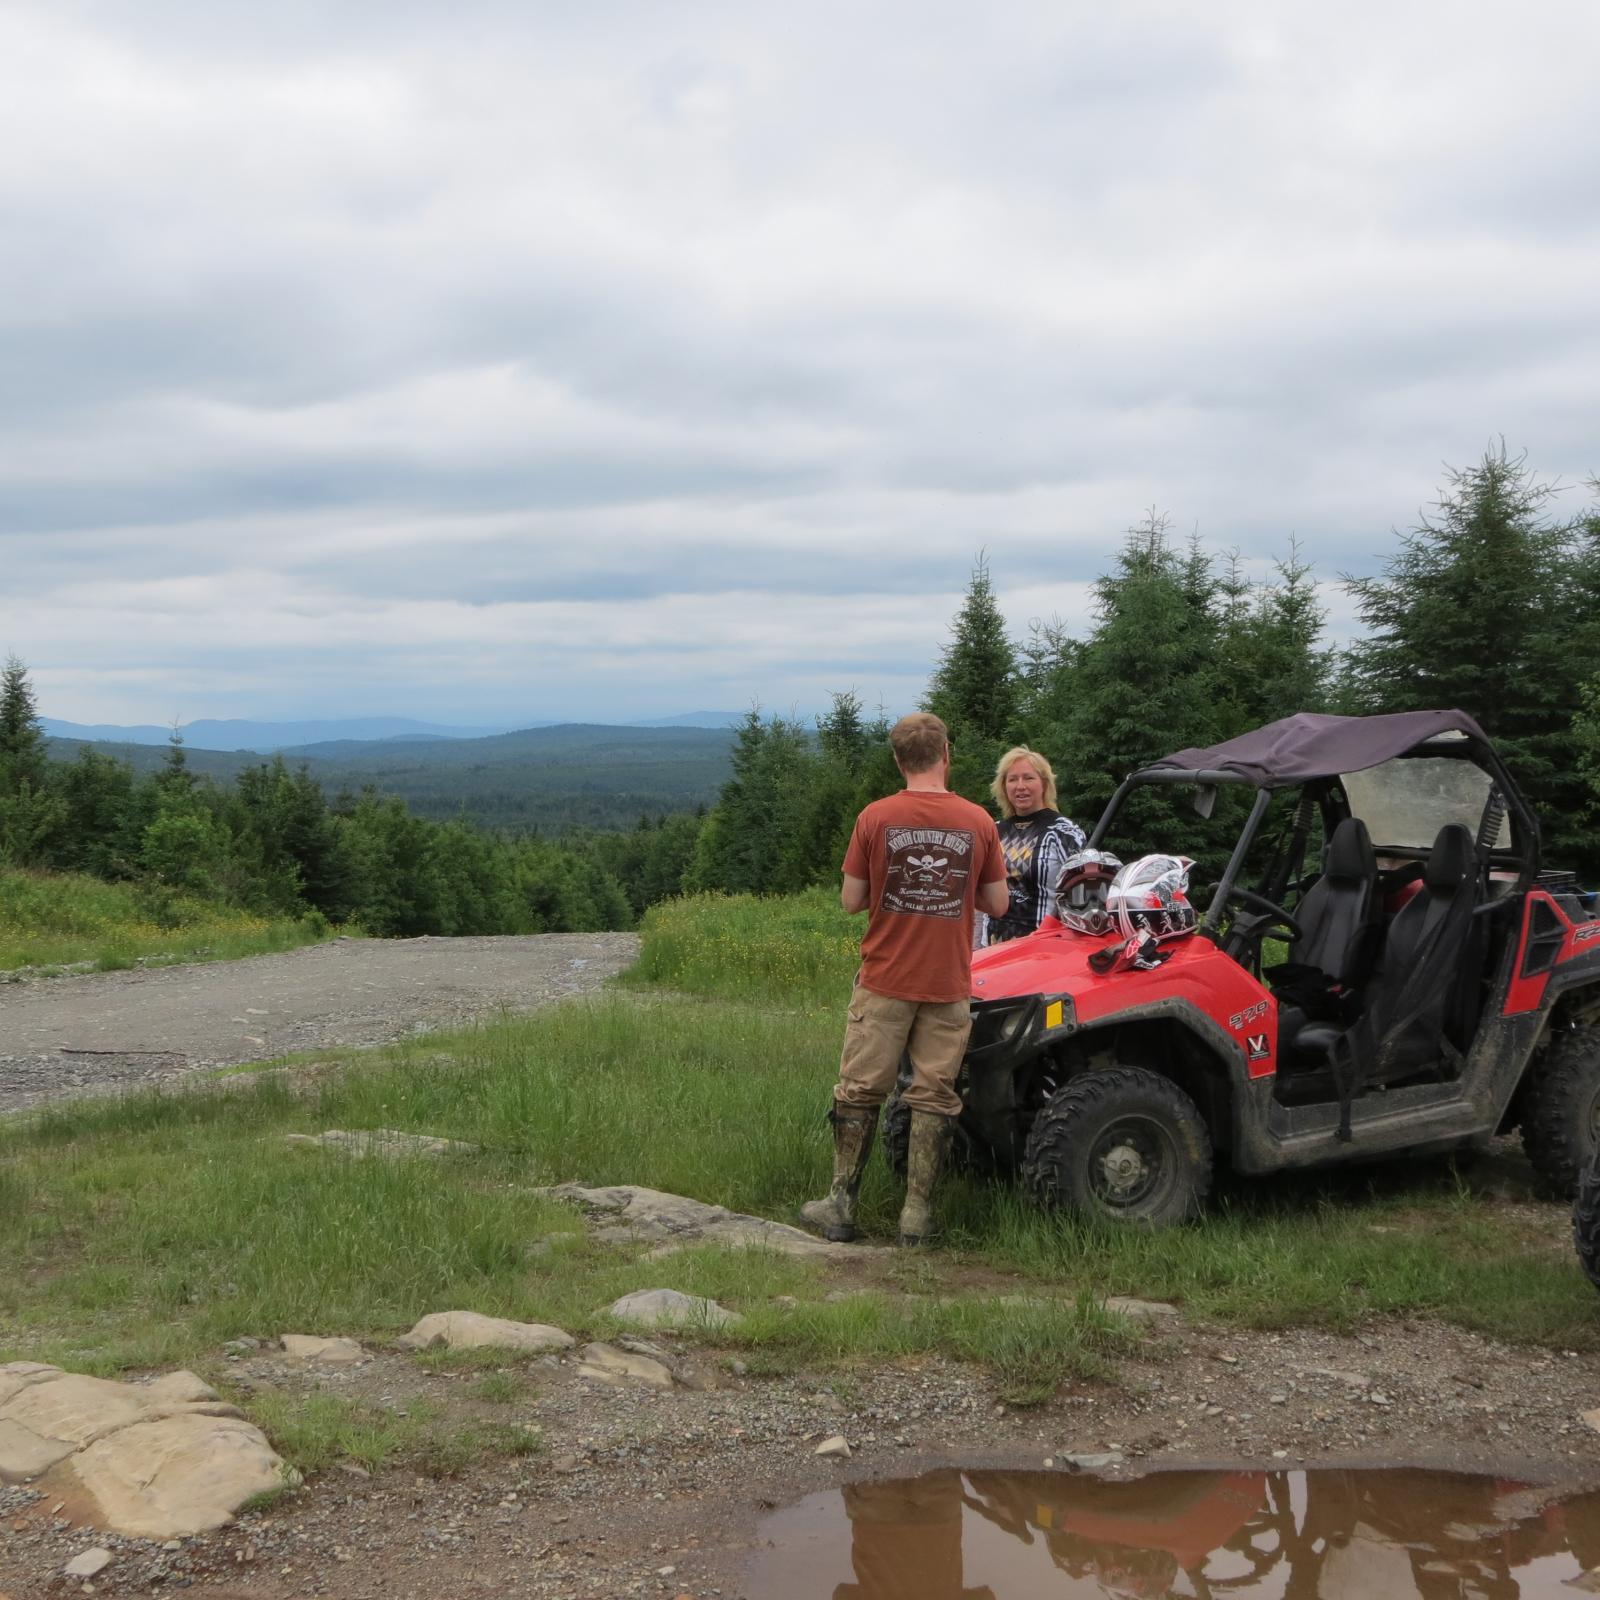 location.2014.north-country-rivers.maine_.polaris-rzr.parked.by-lake.jpg